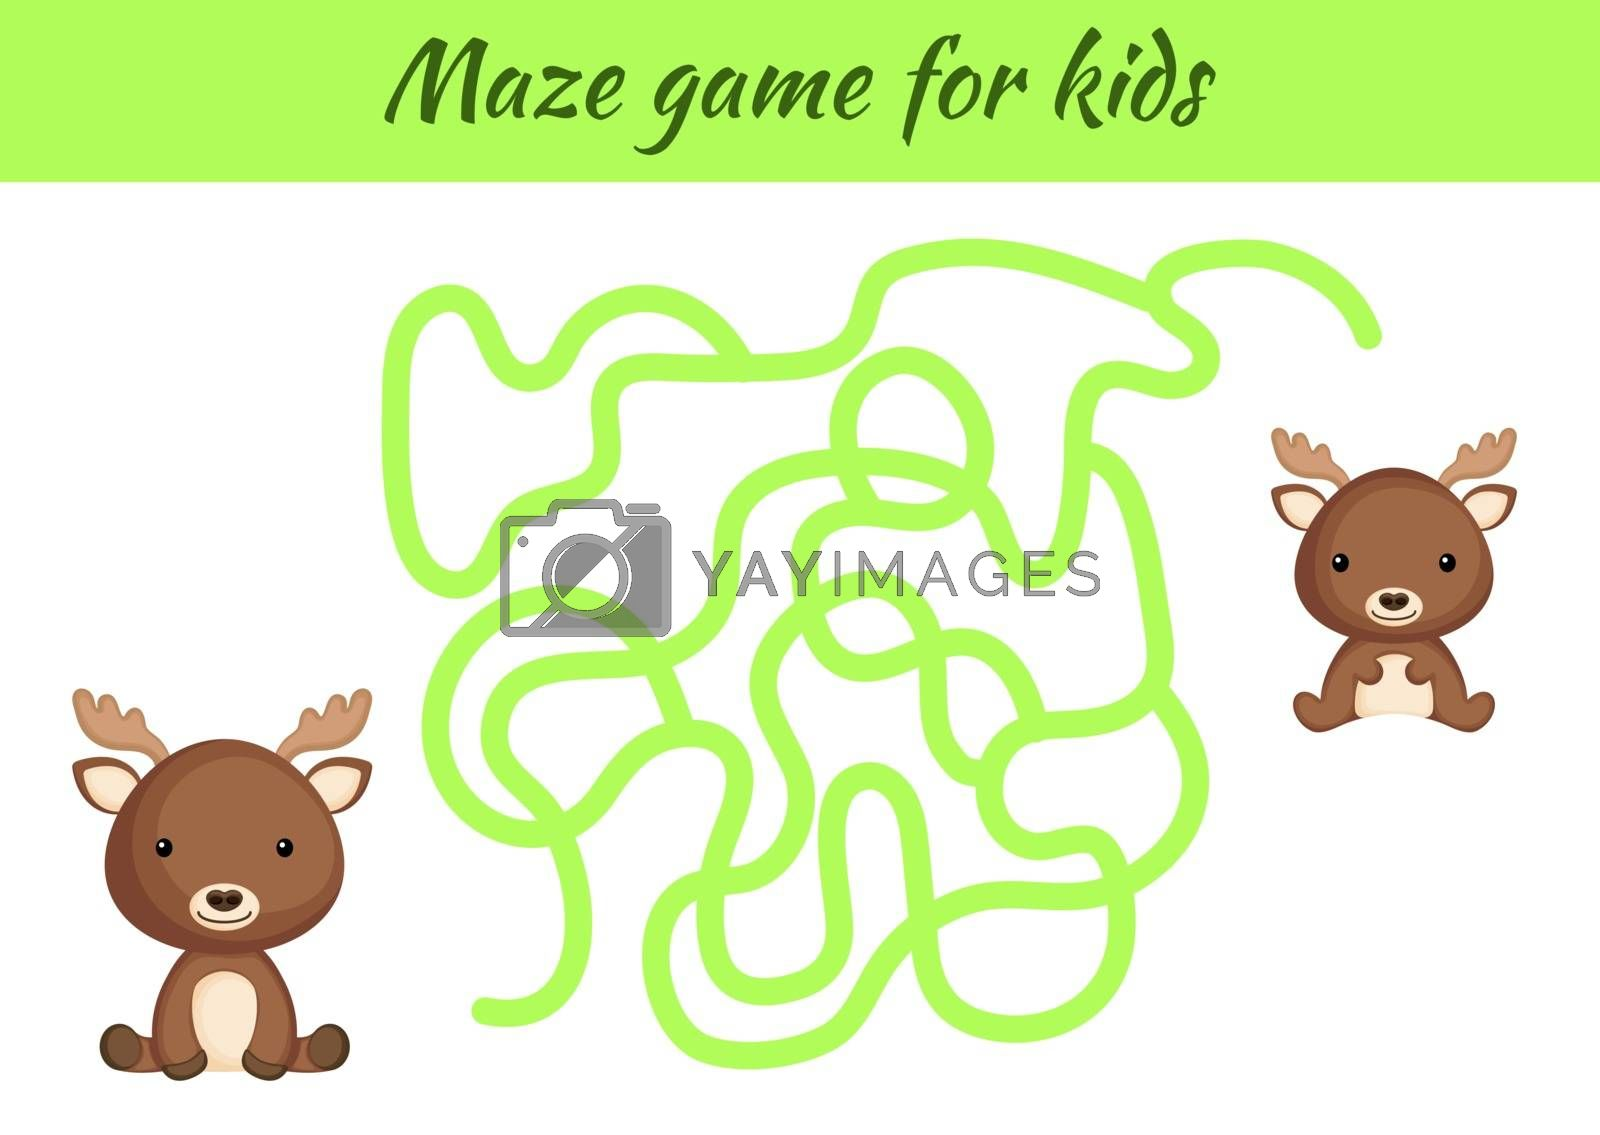 Funny maze or labyrinth game for kids. Help mother find path to baby. Education developing worksheet. Activity page. Cartoon moose characters. Riddle for preschool. Color vector stock illustration.